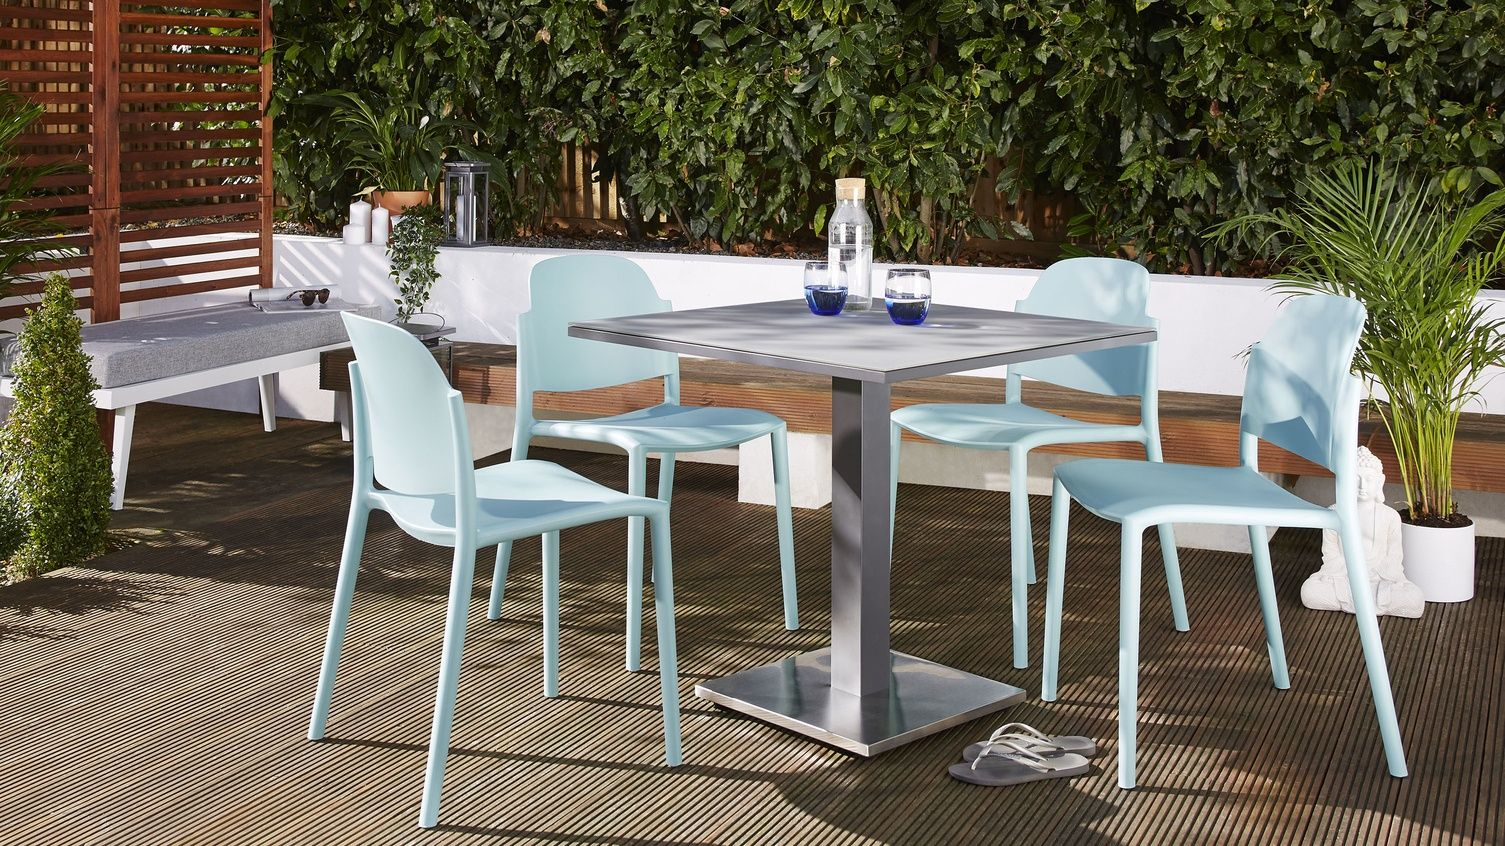 Palermo Grey Pedestal Table And Lola Small Dining Set Garden Dining Set Garden Chairs Small Dining Sets